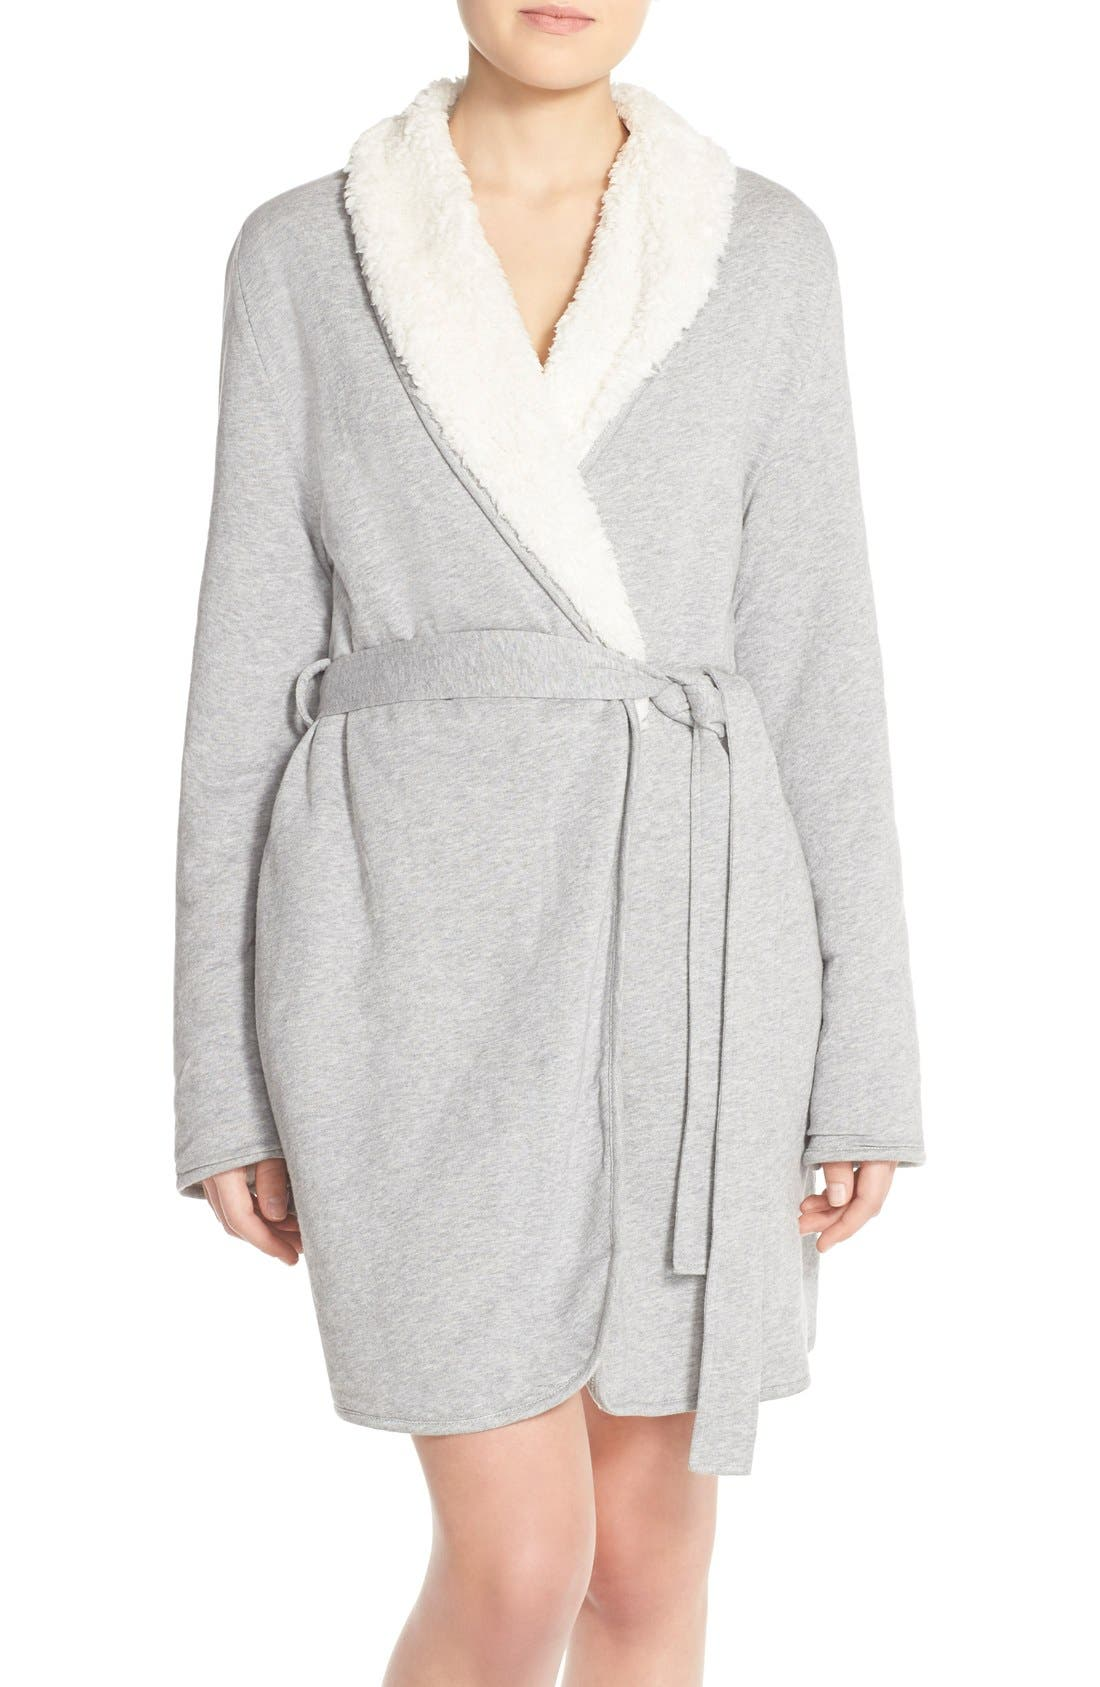 SPLENDID Faux Shearling Terry Robe, Main, color, 025